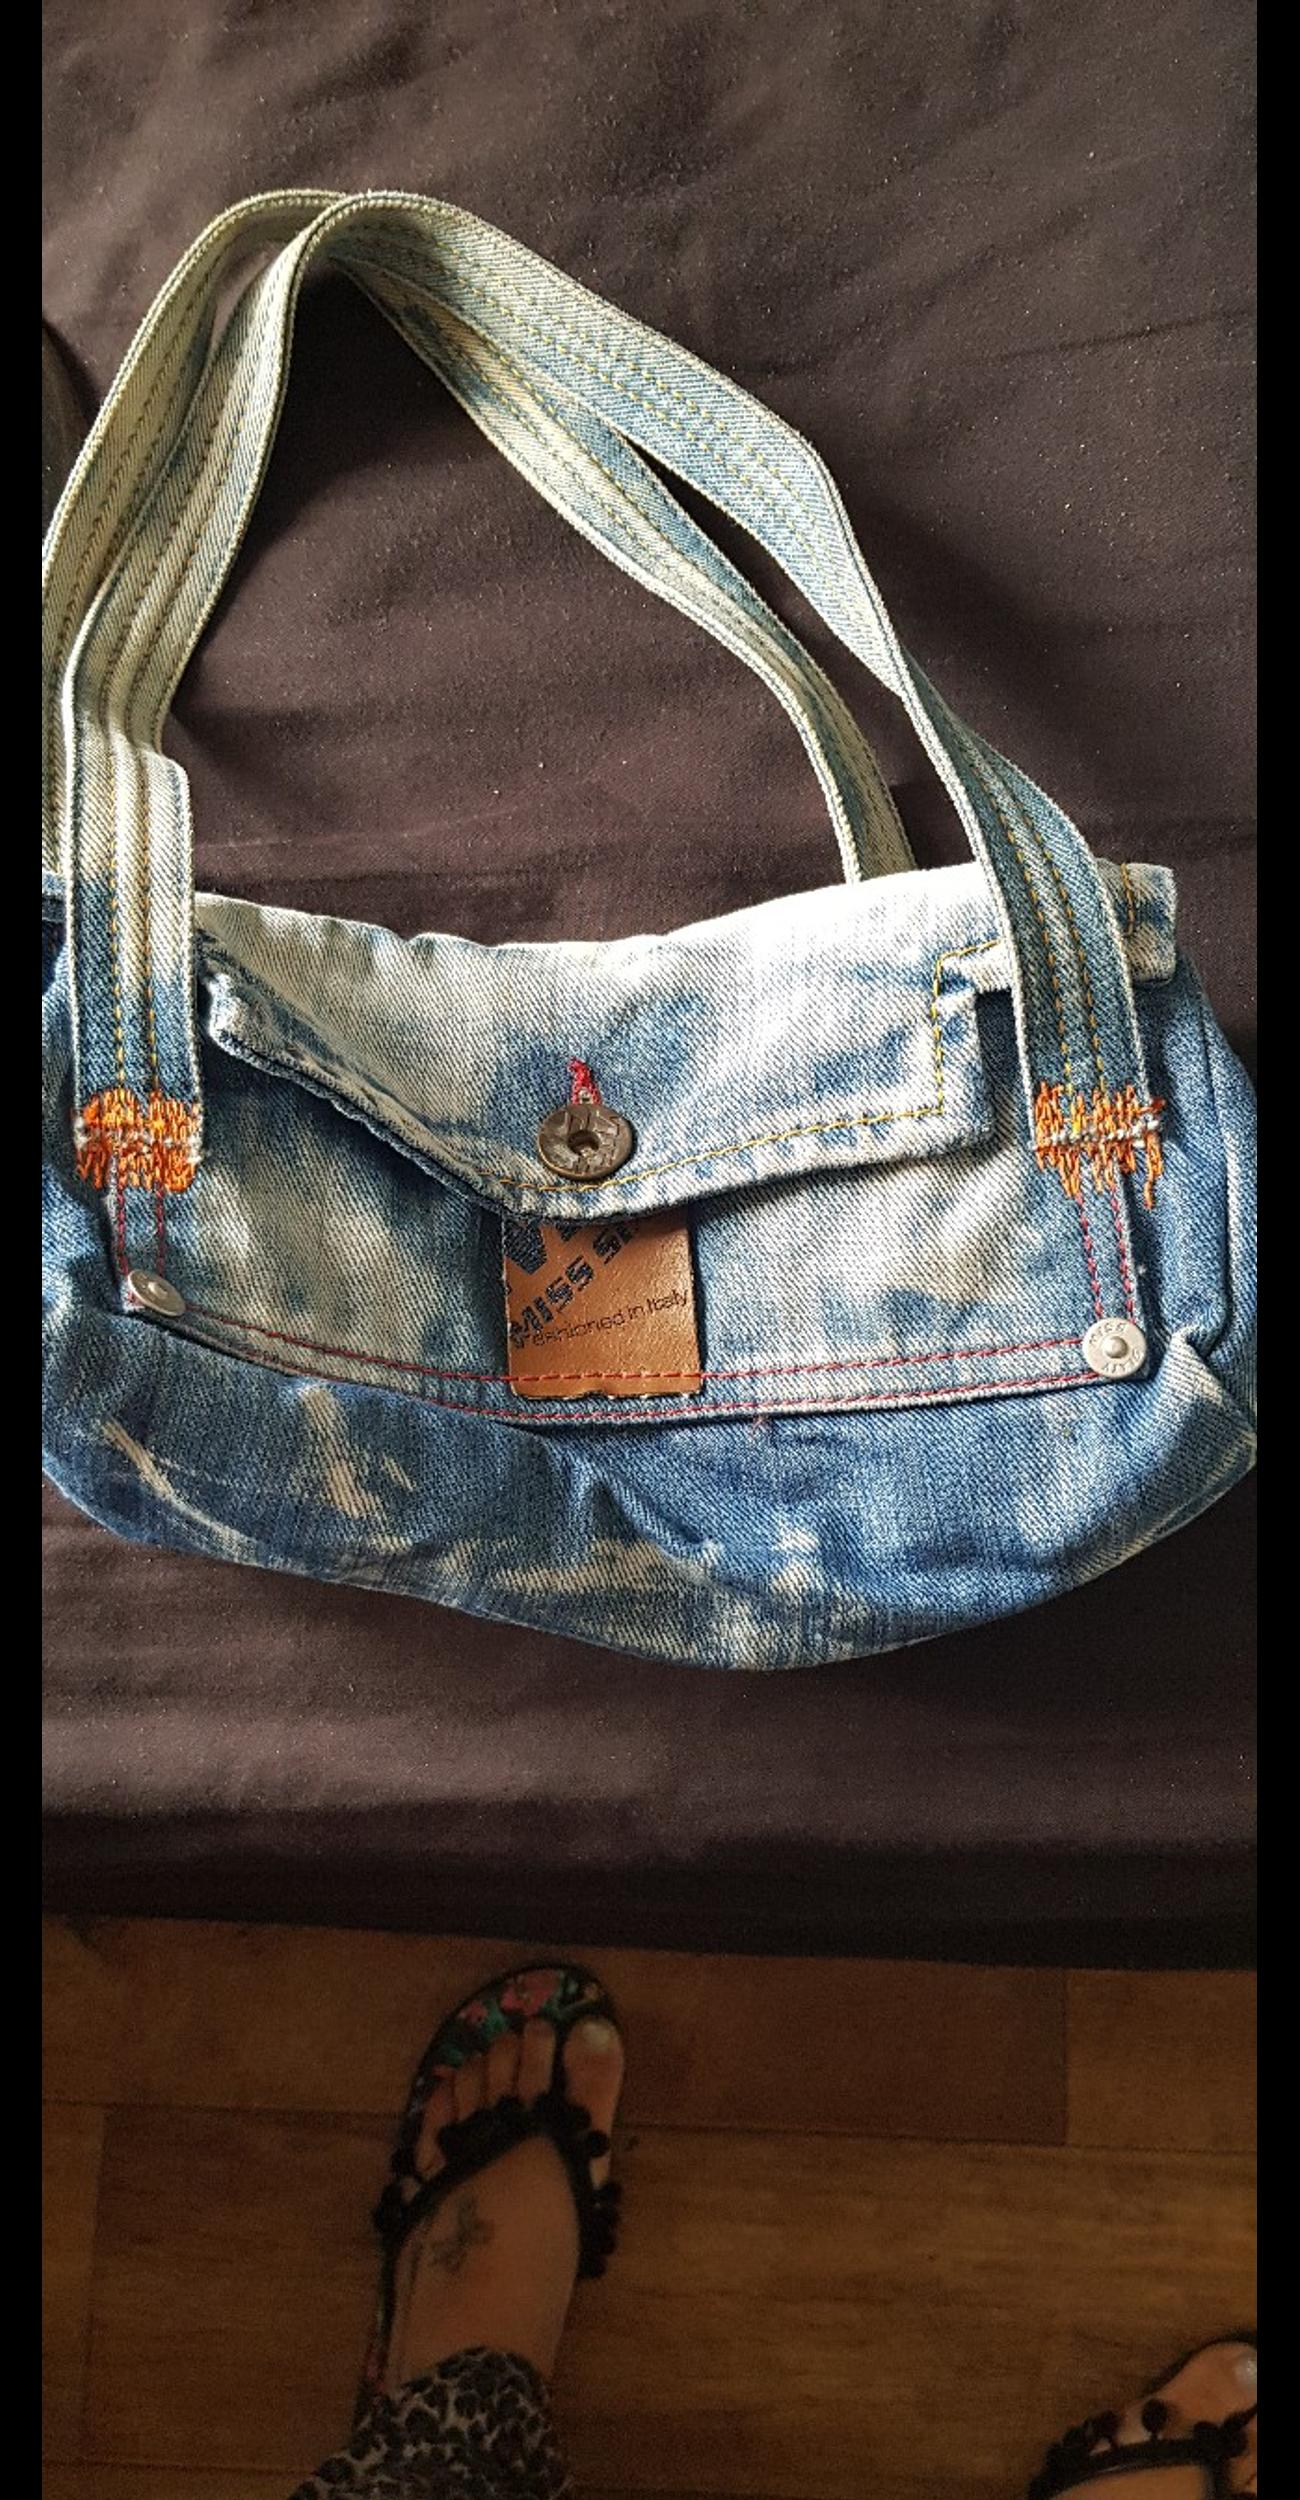 d813cc8f4 miss sixty bag in WV14 Dudley for £2.00 for sale - Shpock